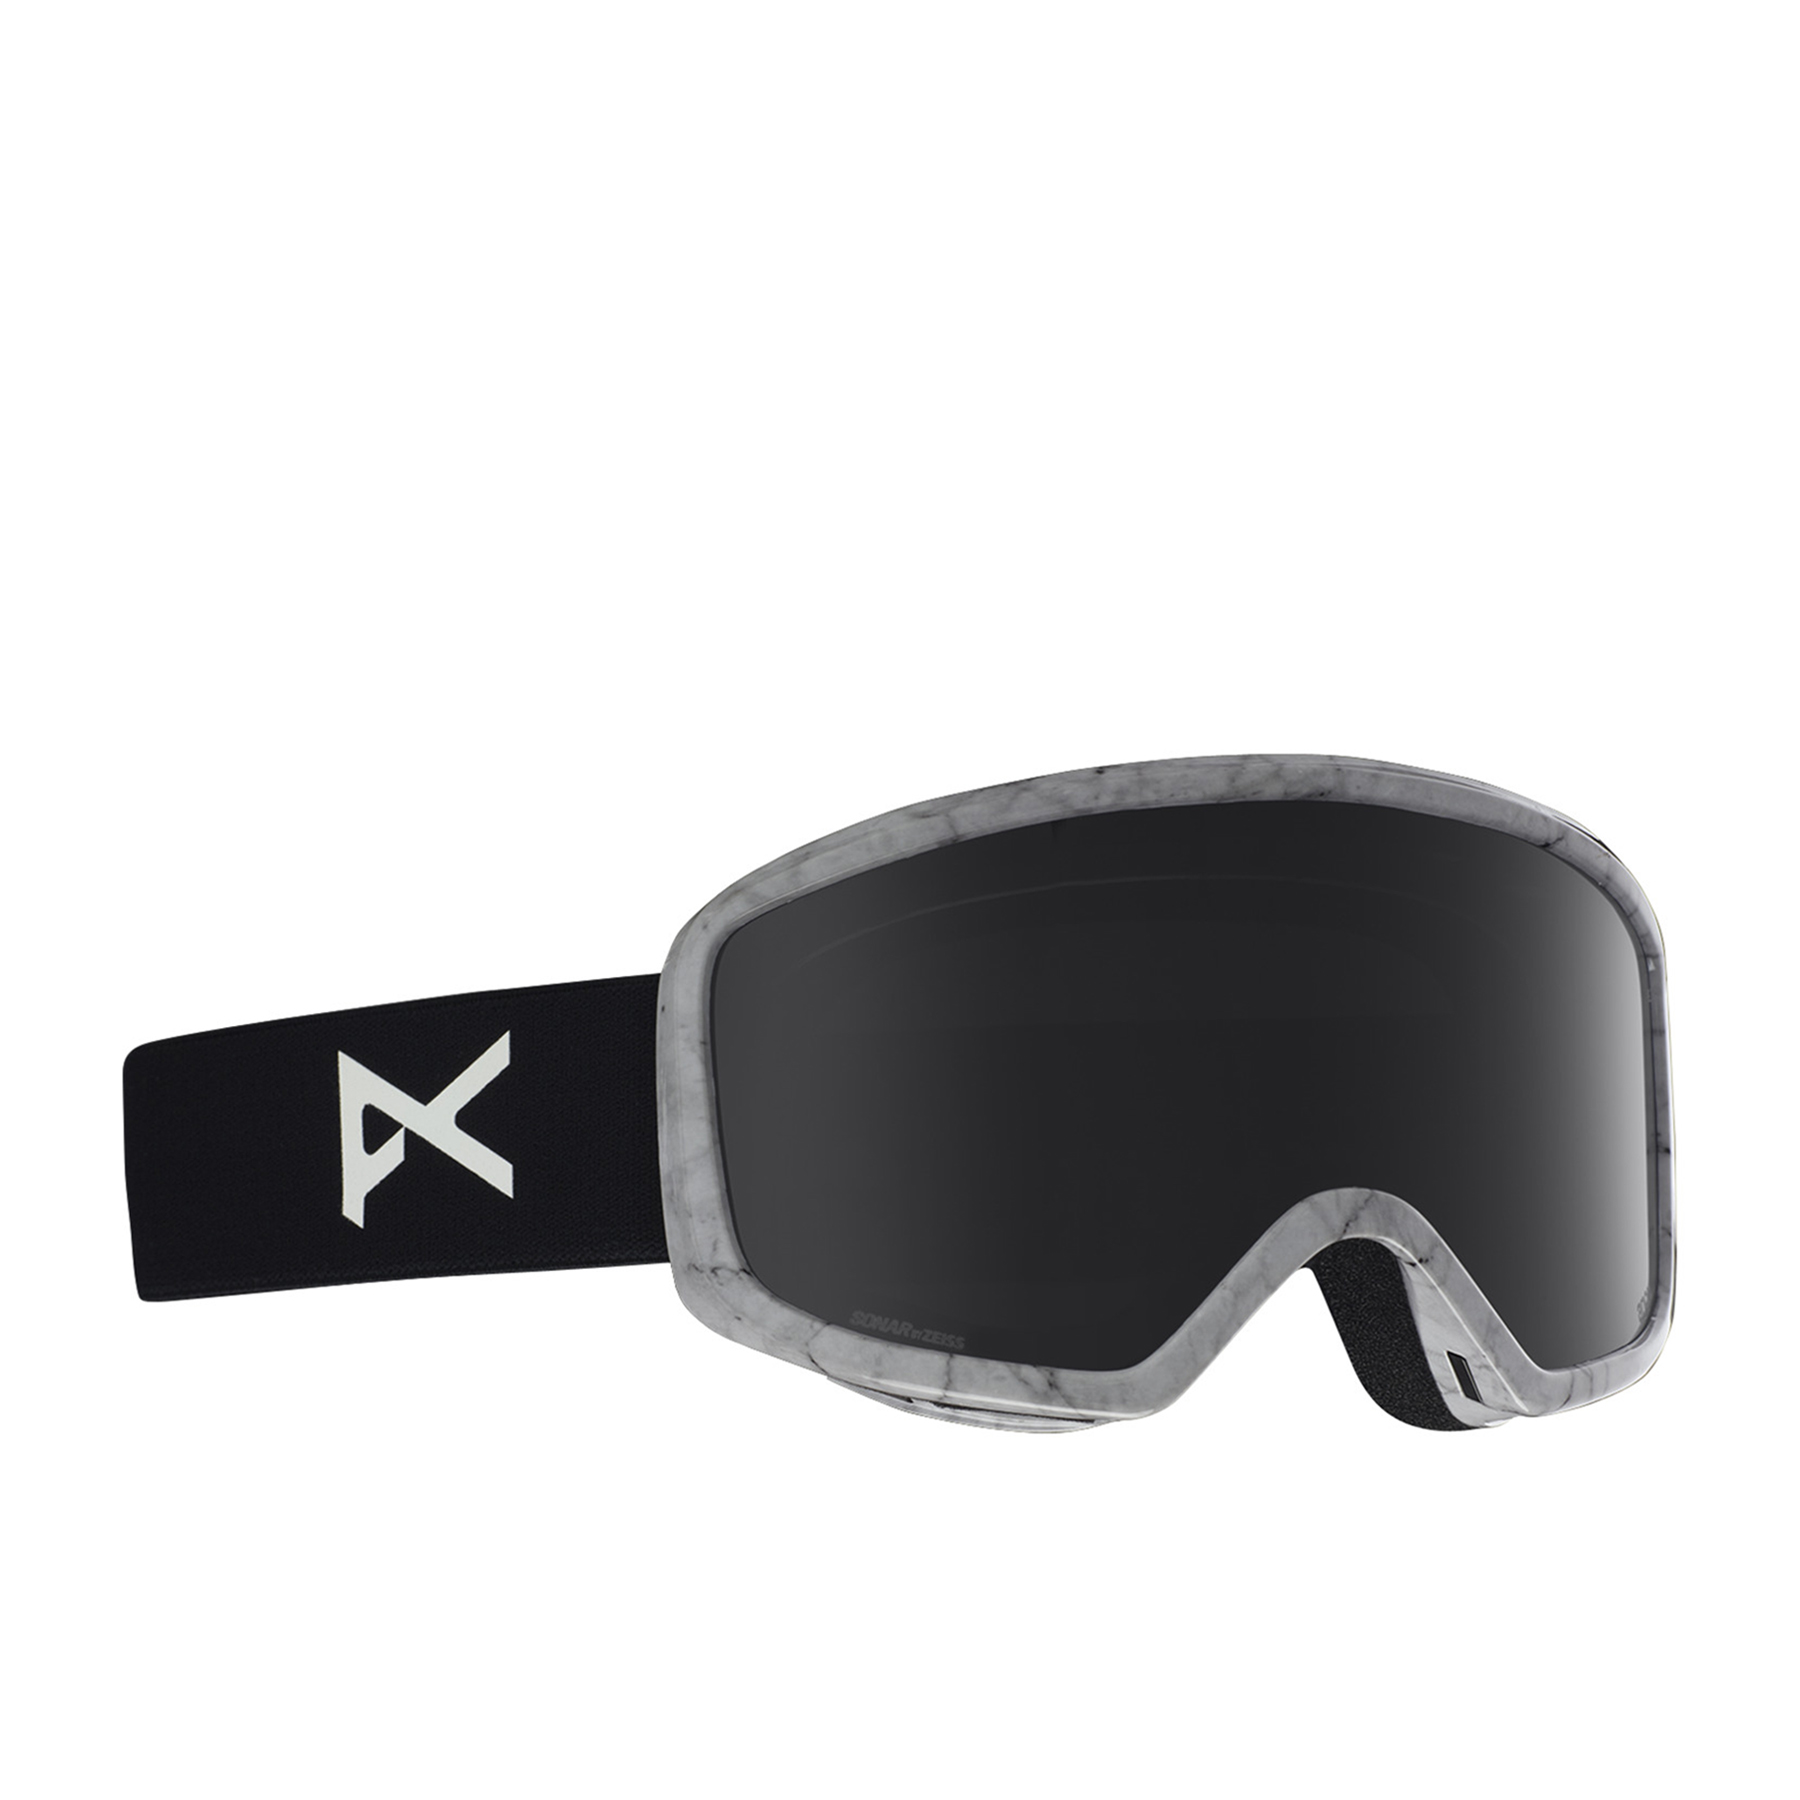 Ski Goggles | Free Delivery options available at Surfdome